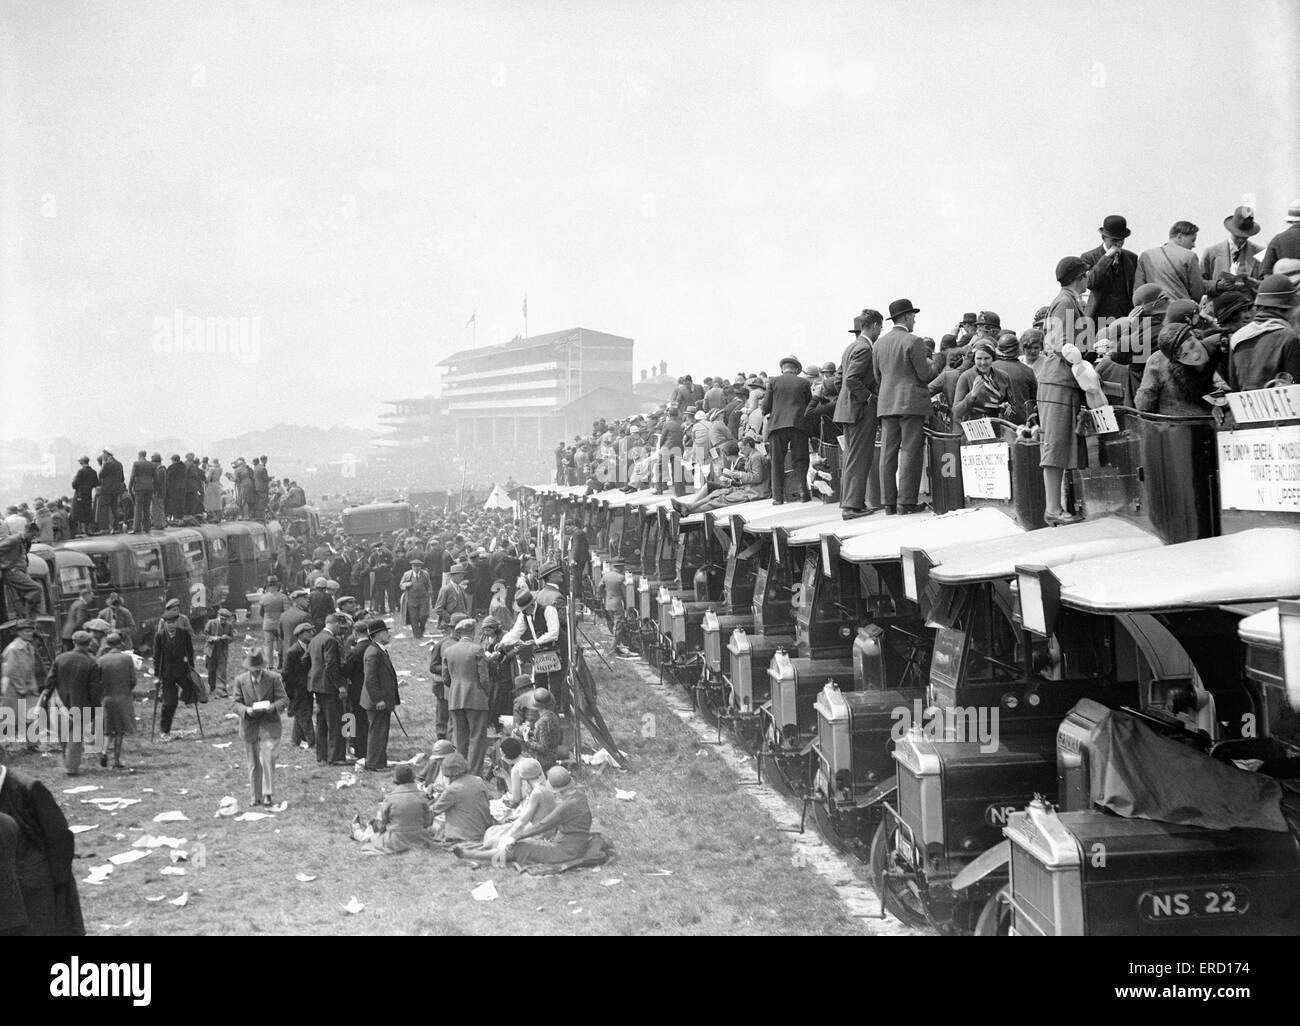 General scenes at the Epsom races, circa 1925. - Stock Image